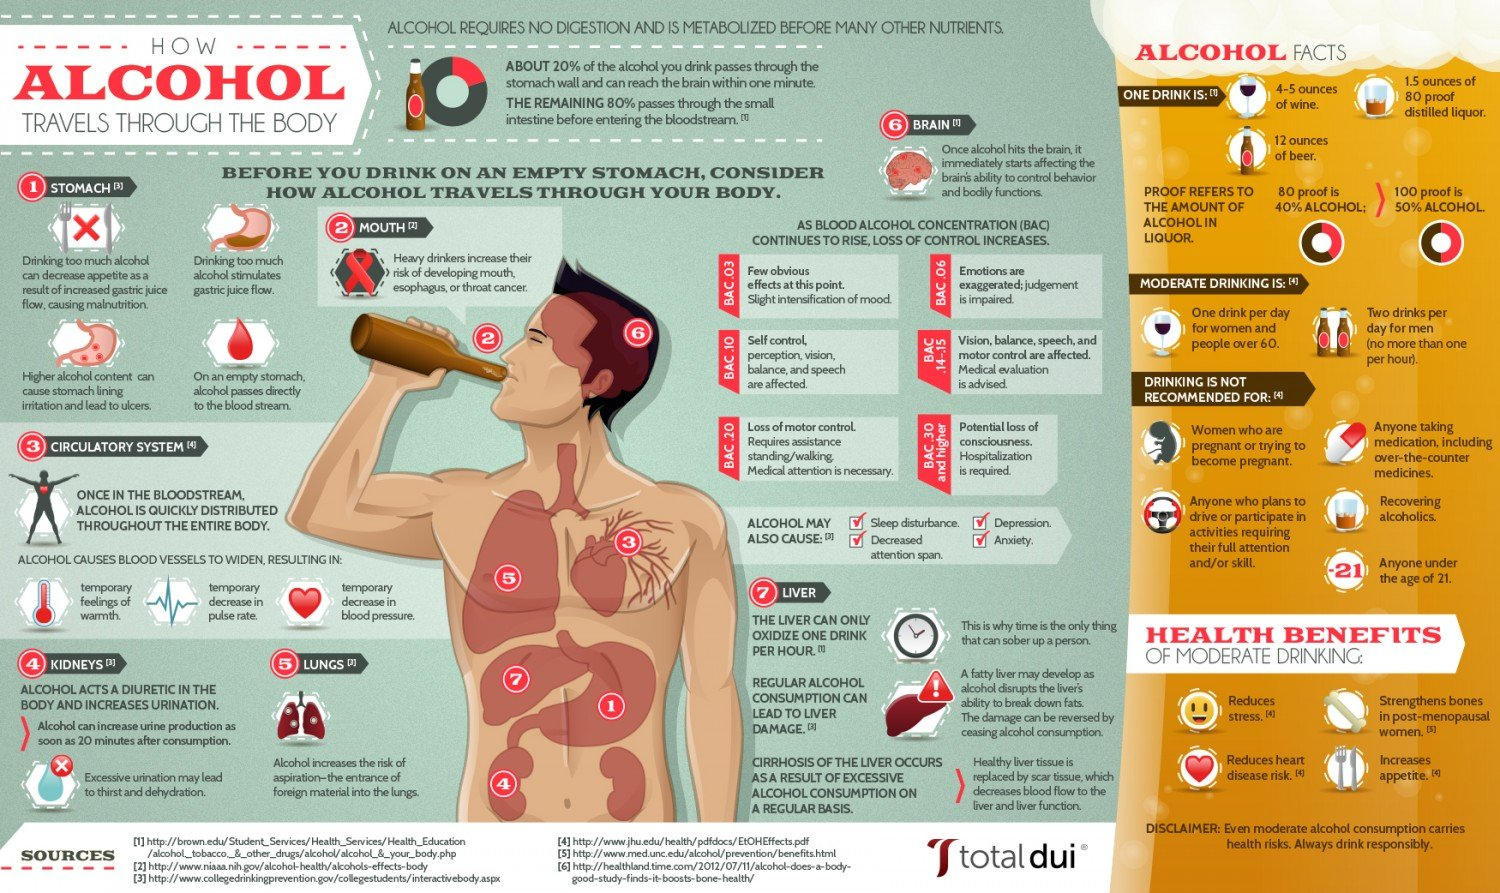 how-alcohol-travels-through-the-body_50ca3deb65aab_w1500.jpeg